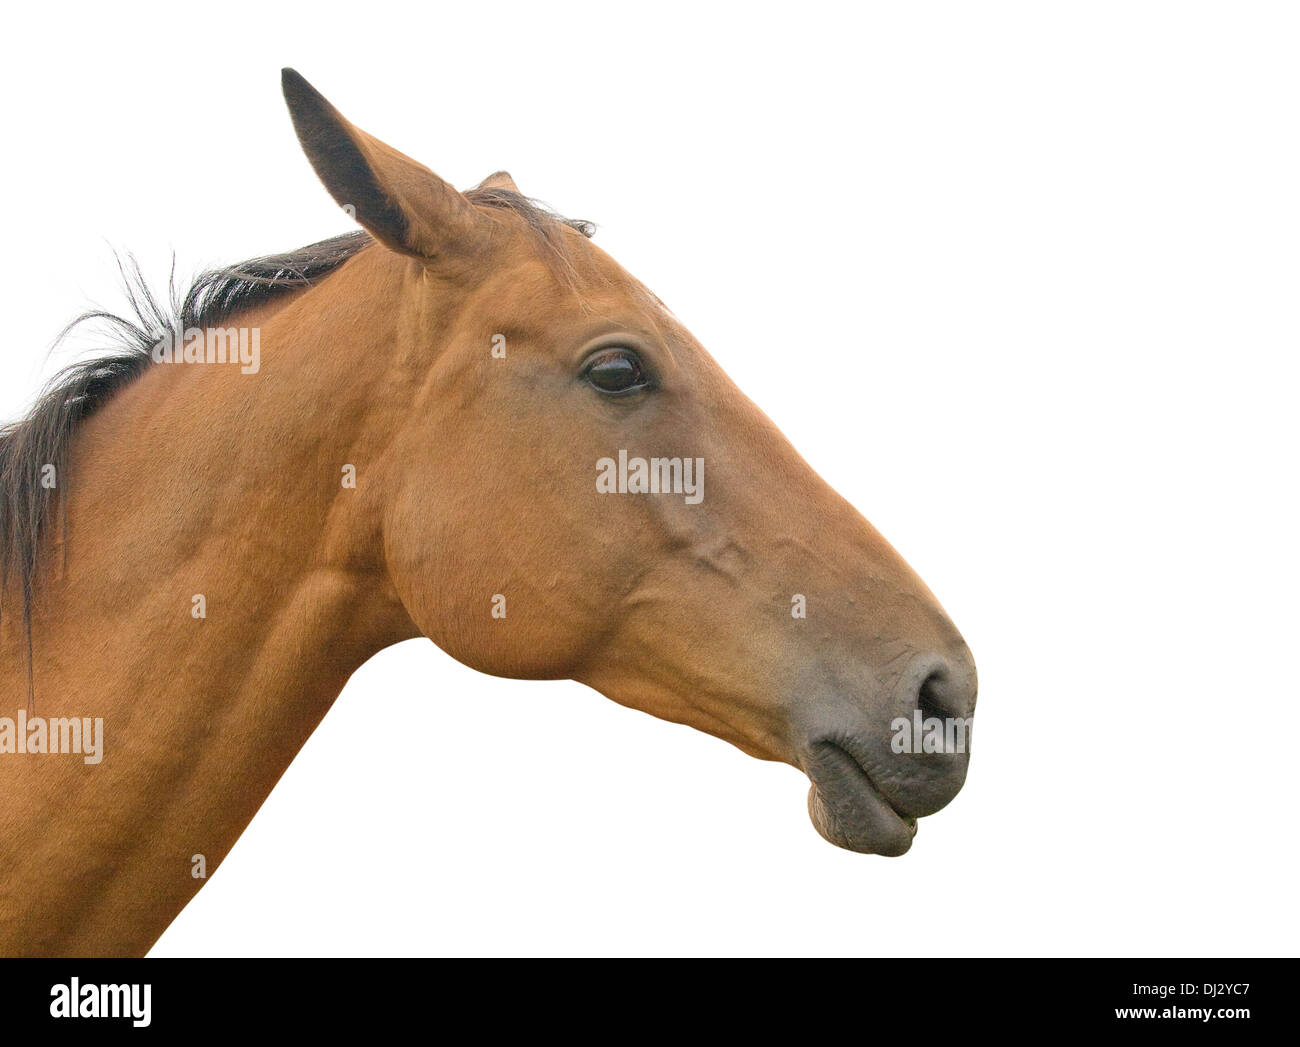 Profile of a horse's head and neck, isolated on white background Stock Photo